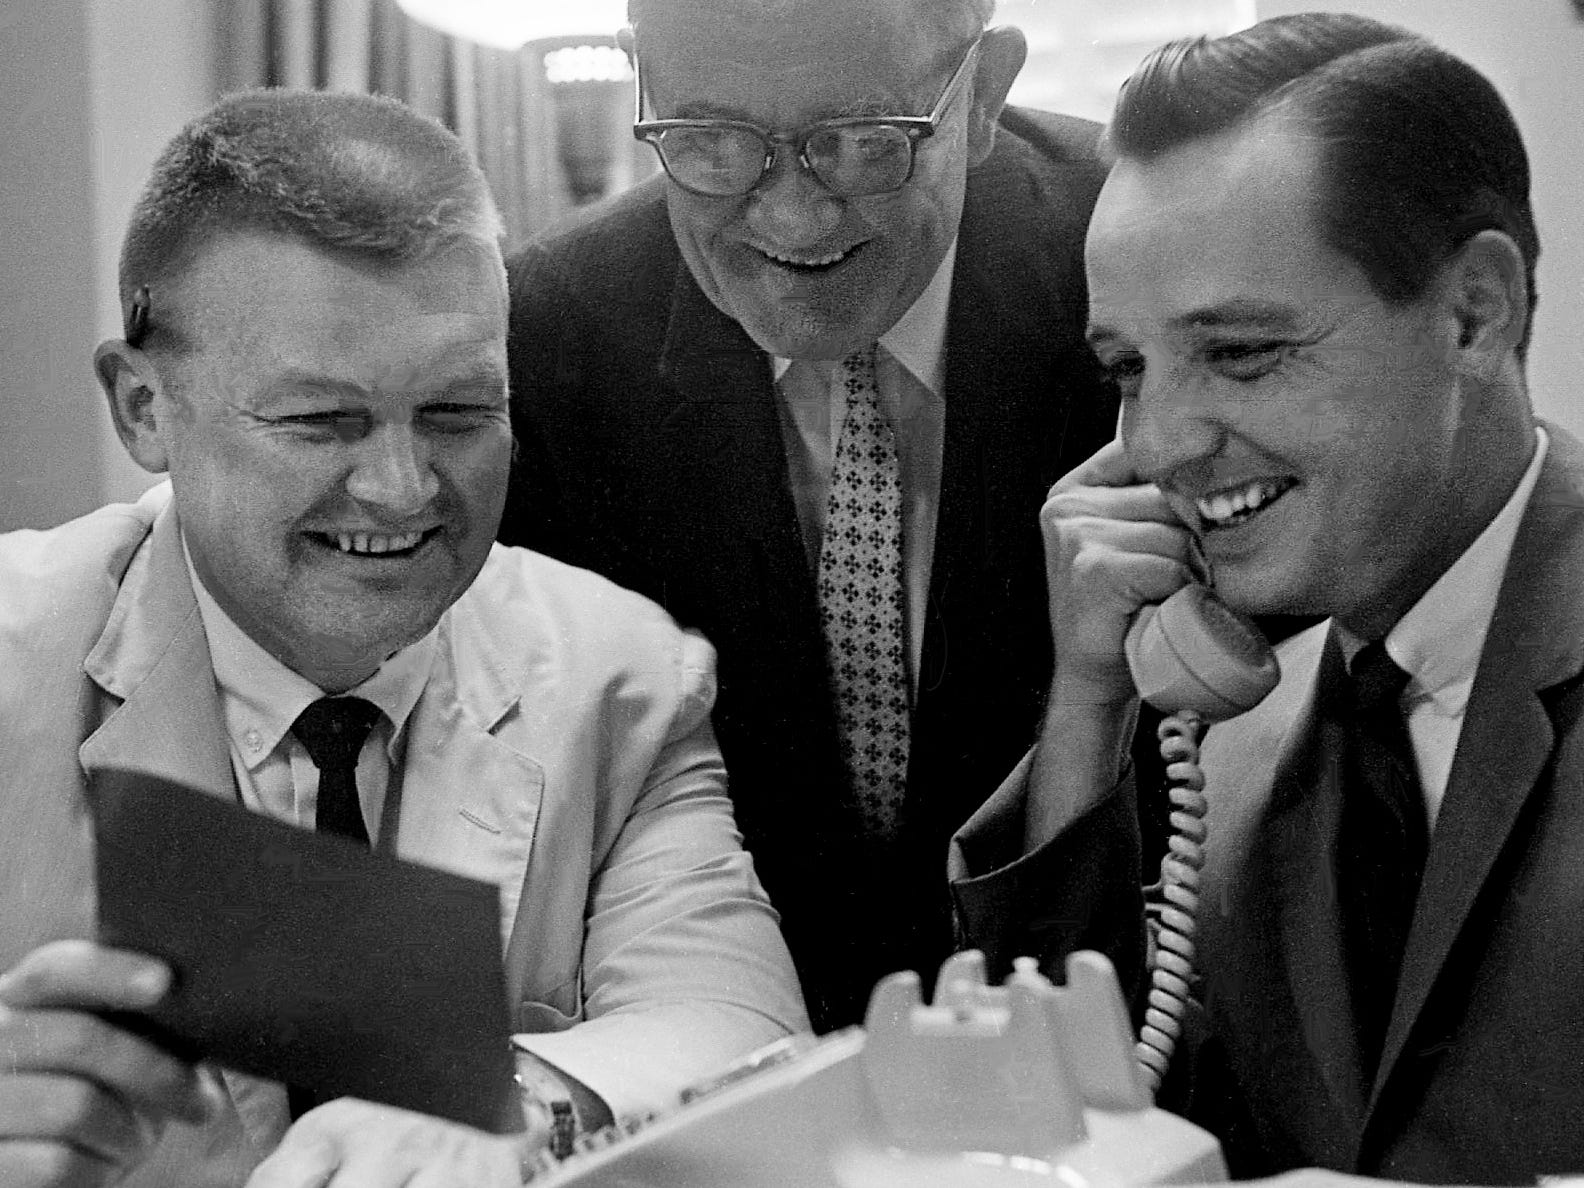 Tennessean editorial writer Gene Graham, left, reads the news of his and veteran reporter Nat Caldwell's Pulitzer Prize win as publisher Amon Carter Evans, right, talks with Caldwell by phone May 7, 1962. Caldwell was on an assignment in Texas. Between them is editorial cartoonist Tom Little, who won a Pulitzer Prize for his work in 1957.